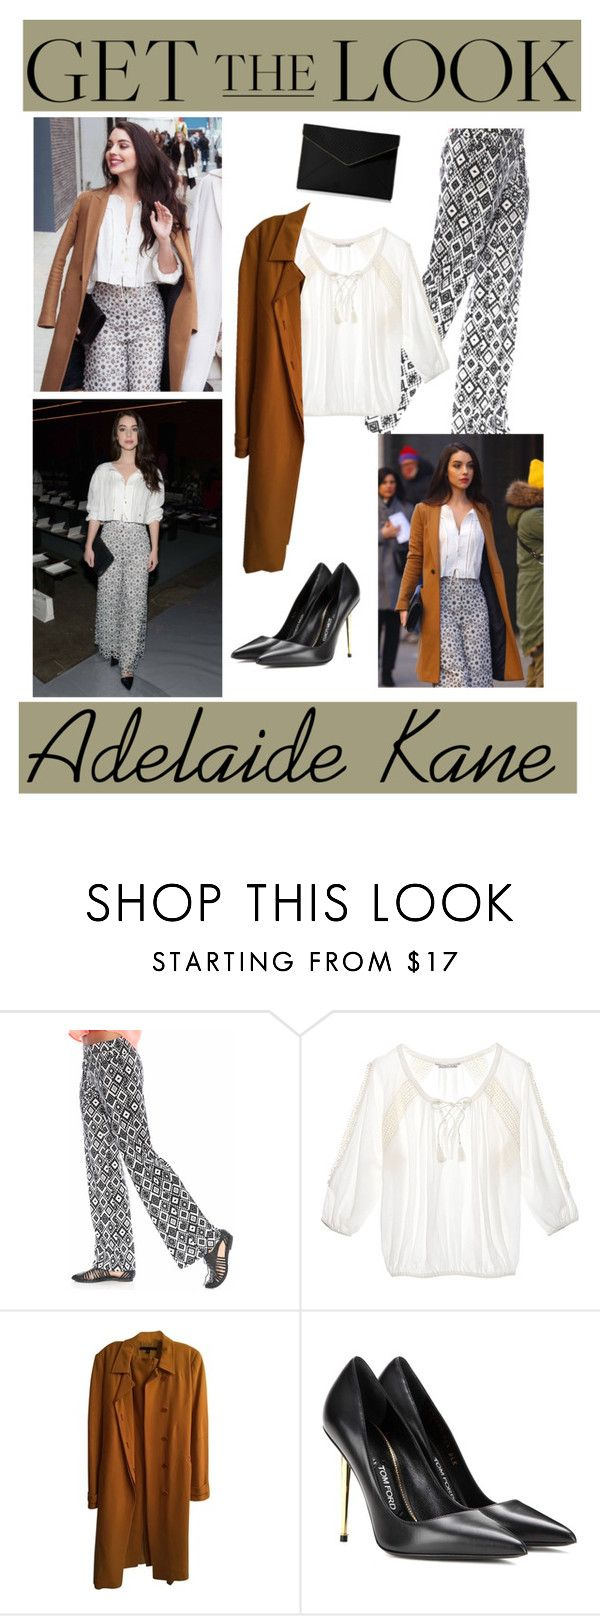 """Adelaide Kane"" by ancona148 ❤ liked on Polyvore featuring Kane, Grayson, Victoria's Secret, Alessandro Dell'Acqua, Tom Ford and Rebecca Minkoff"